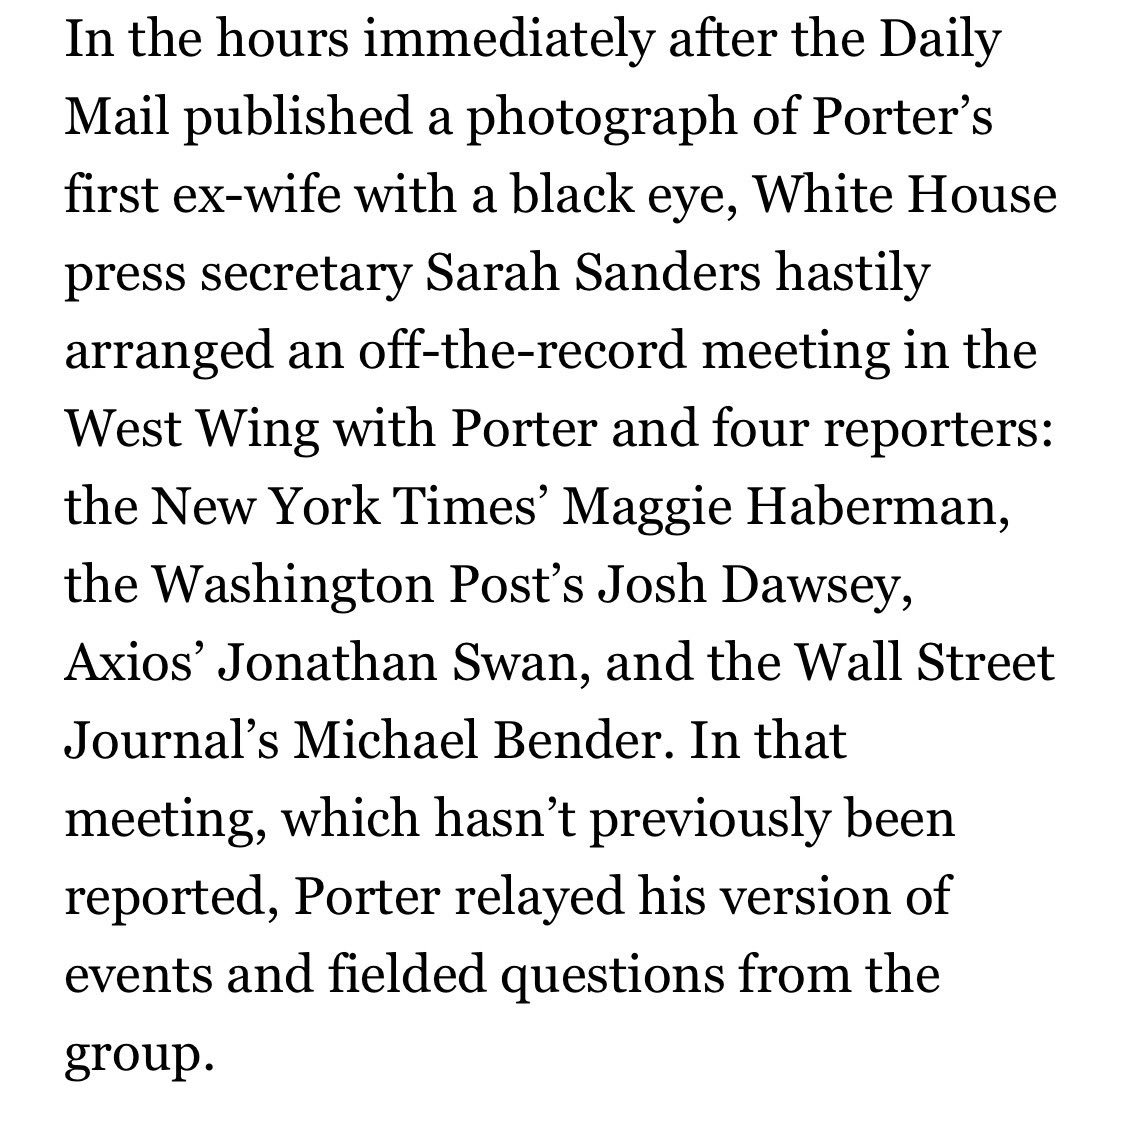 .@elianayjohnson reports that — despite claims they showed Porter the door shortly after the abuse story broke — @PressSec arranged for Porter to tell his side of the stories (3 women alleging abuse) to 4 print reporters. Your tax dollars at work.